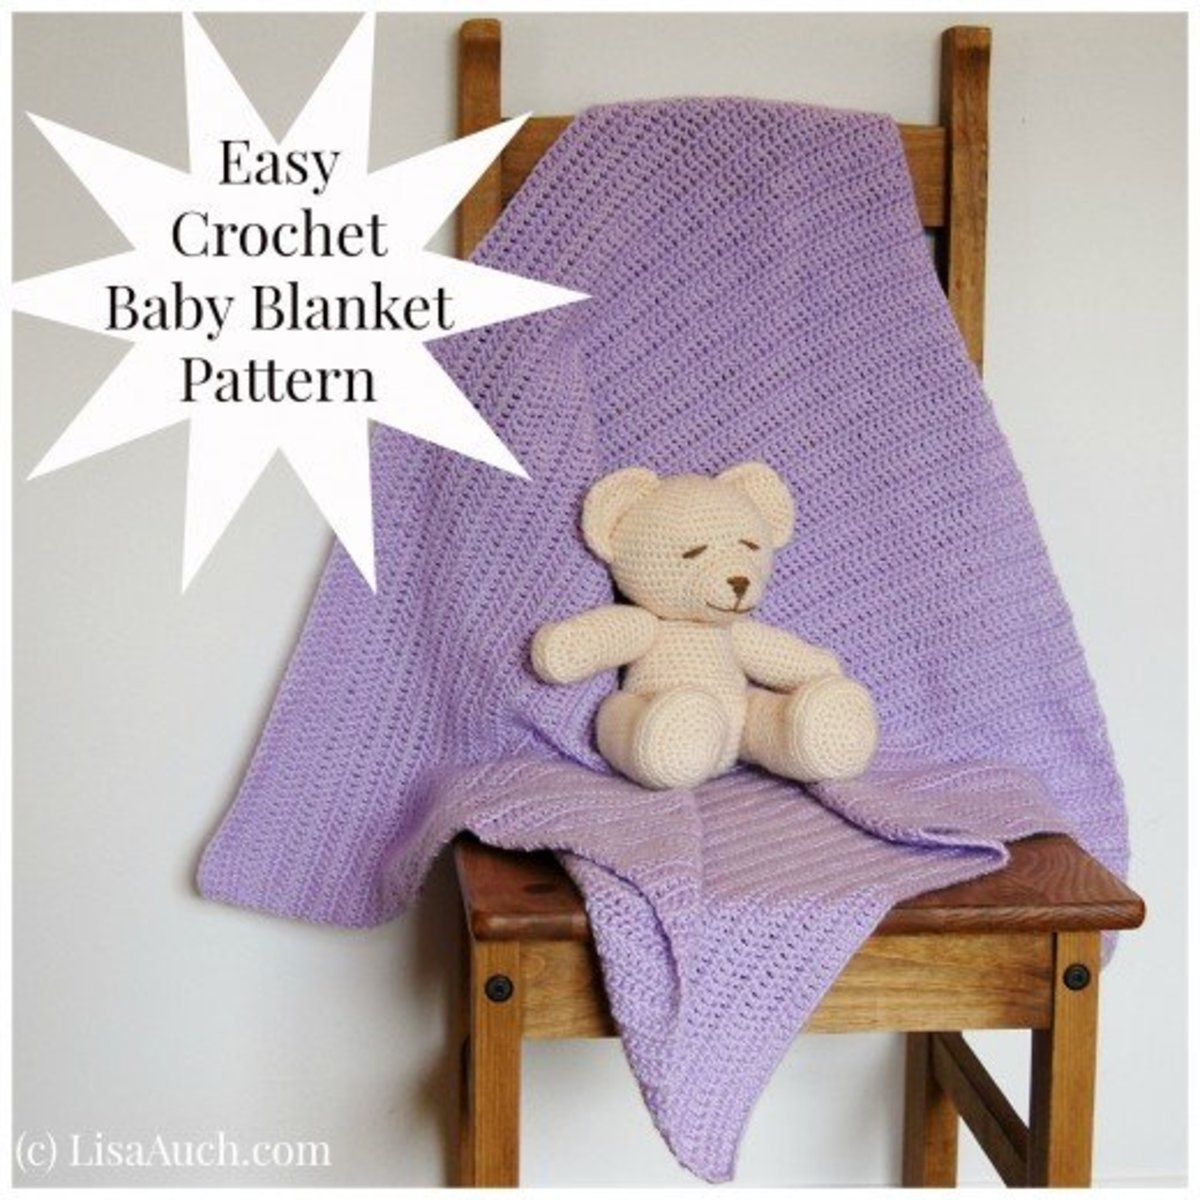 How to crochet a baby blanket.